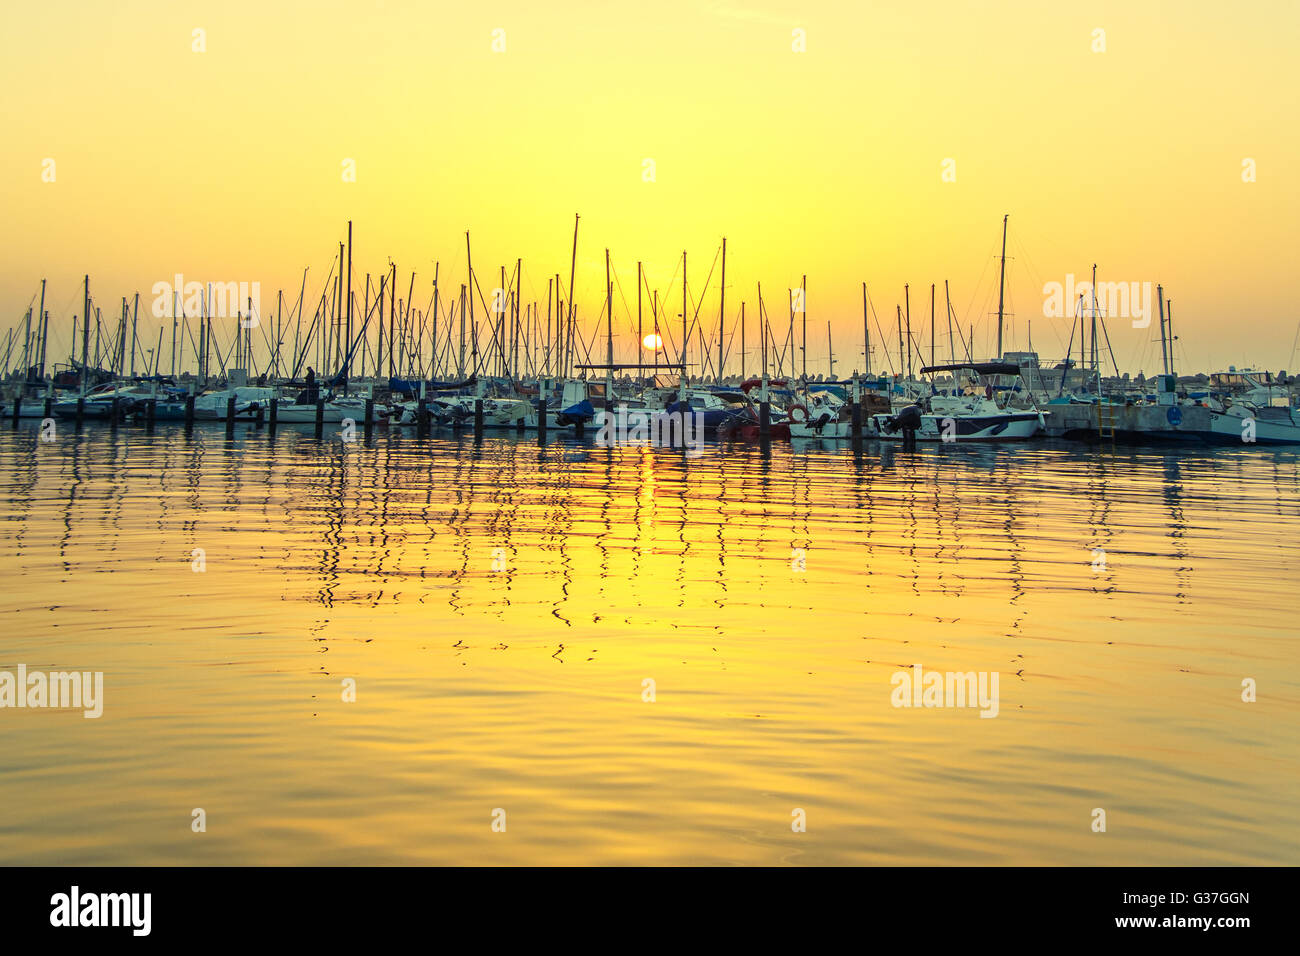 reflection in water boats. vintage filtered image - Stock Image